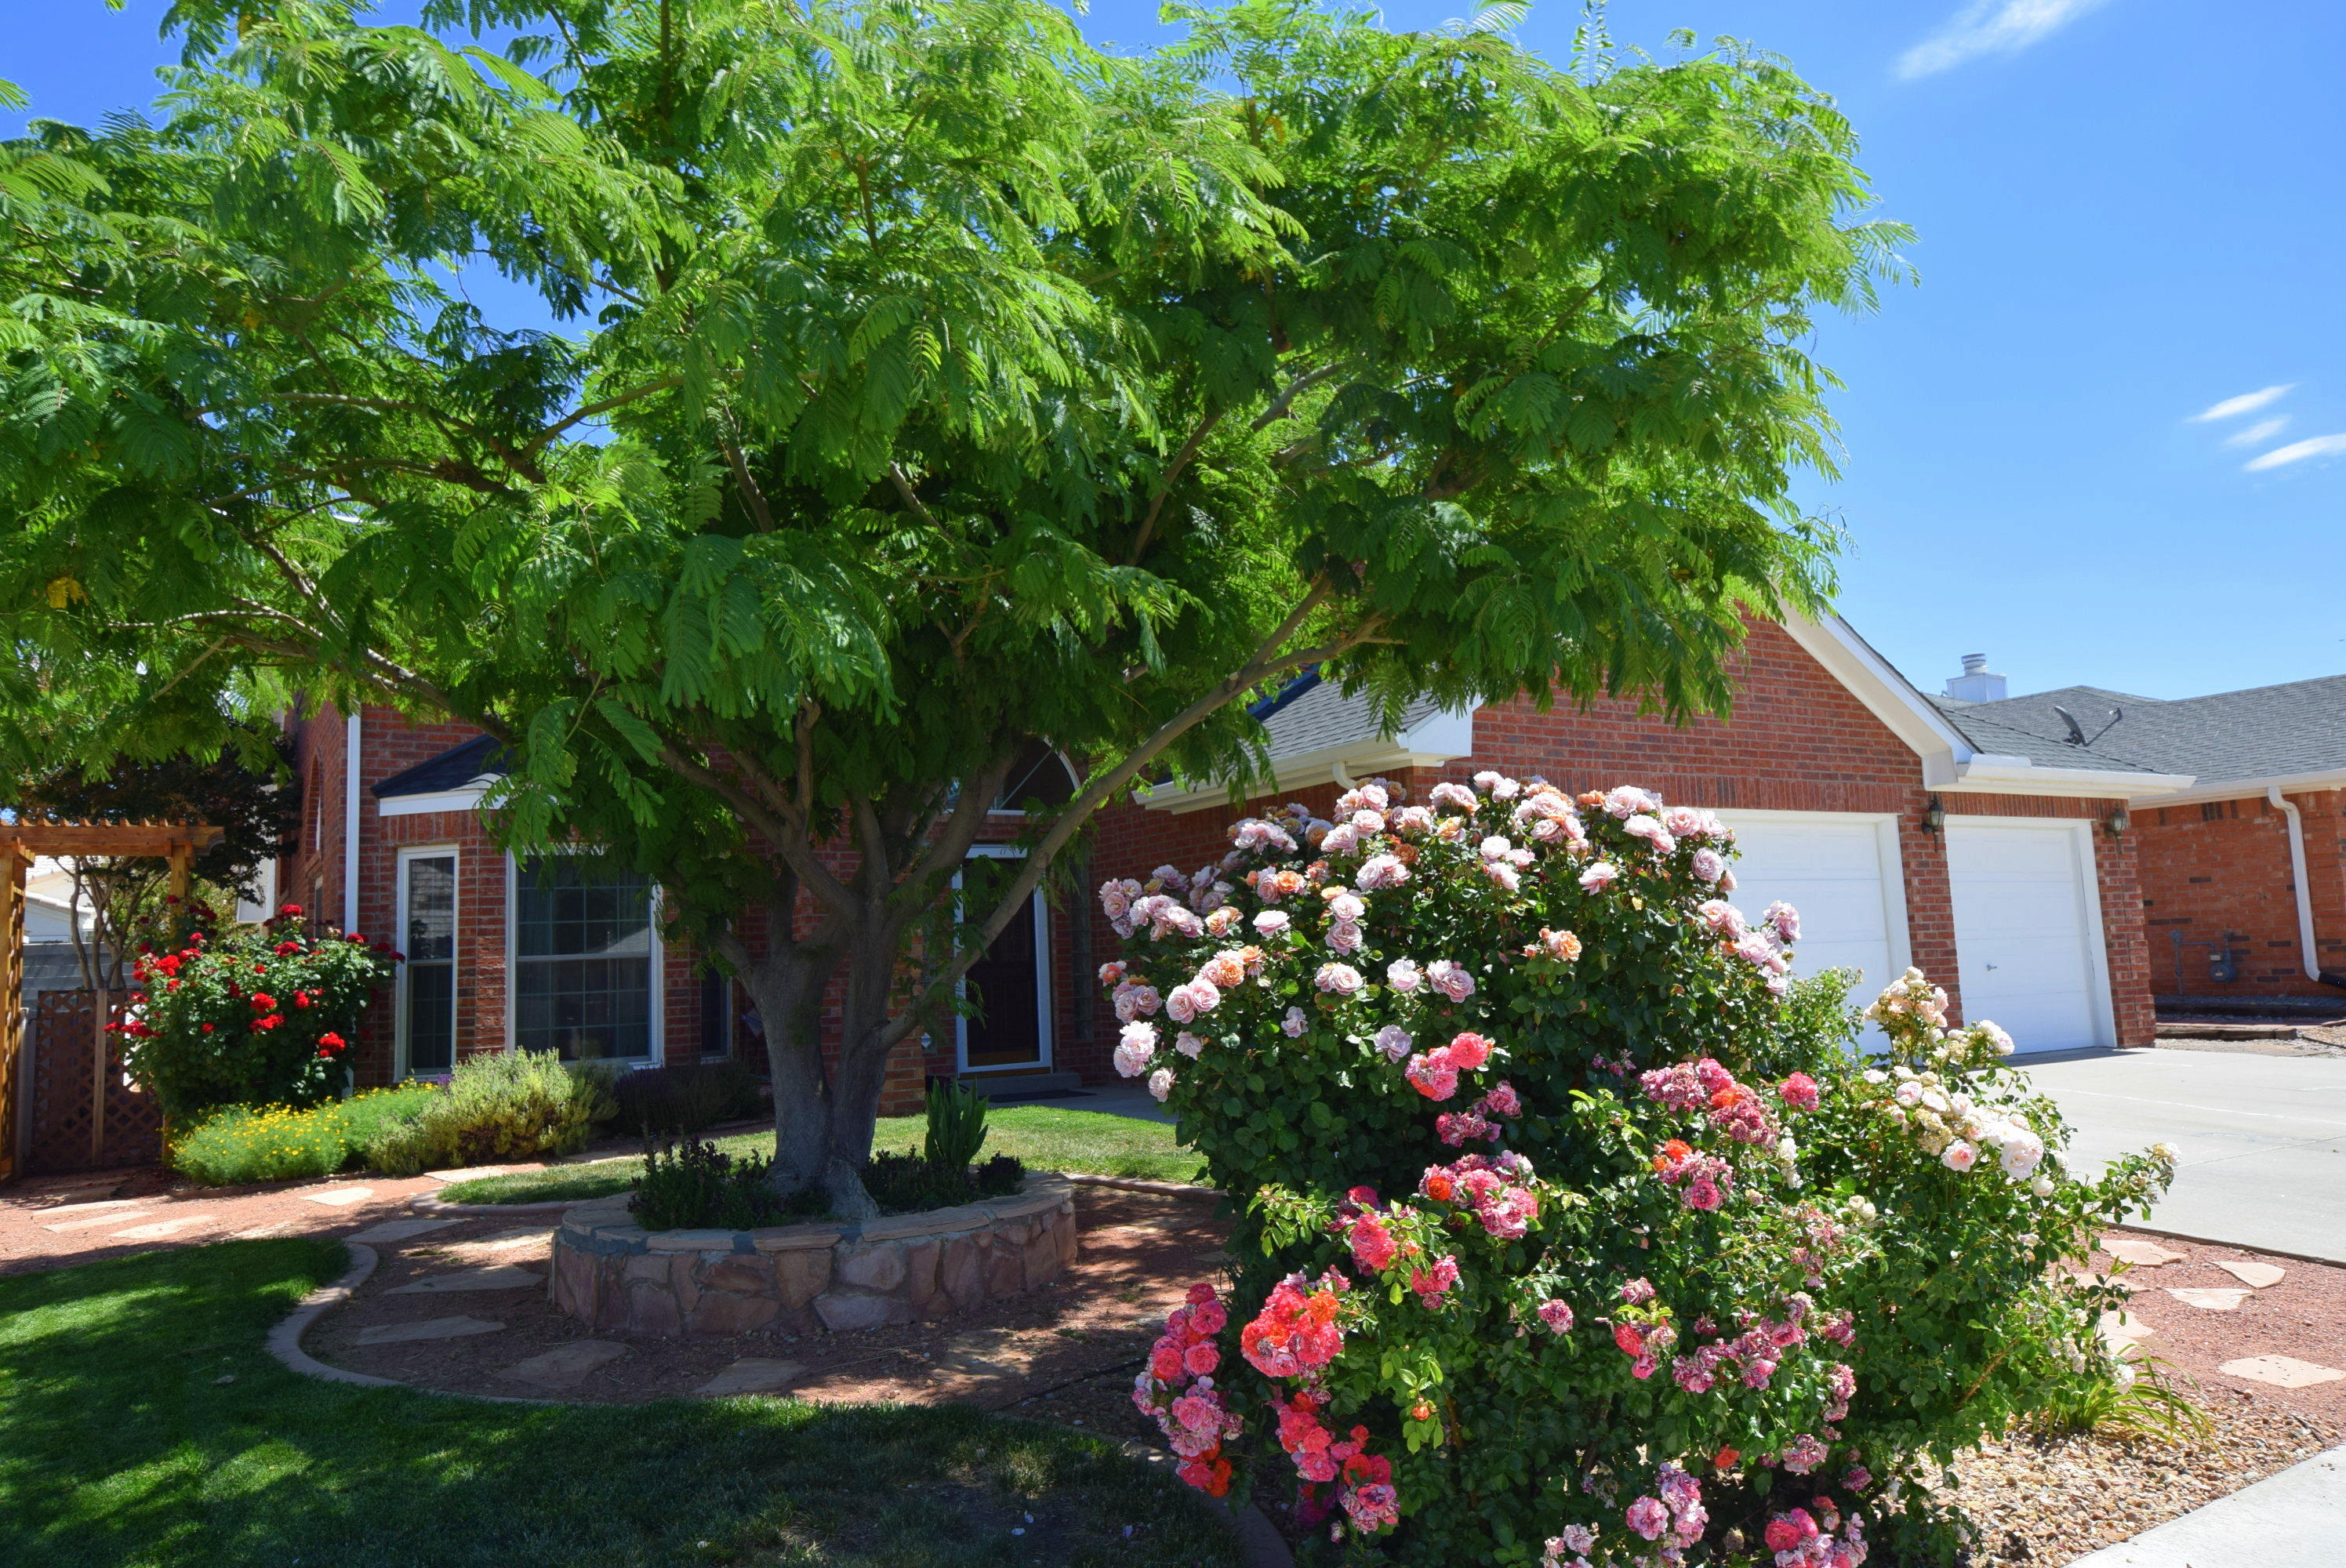 Beautiful Opal Jenkins in unique Willow Wood. This 2 story home has hardwood floors with stone  & tile accents.  The master bedroom with fully renovated bathroom is on the main floor.  2 bedrooms are upstairs with a possible 4th bedroom that could be a yoga studio, office, or family room.  This is a energy efficient home with low E windows, pellet stove and solar panels.  The kitchen has been fully renovated with granite and stone.  The outside has been fully landscaped (front & back) with 6 zone sprinkler/bubblier system; water feature, raised garden beds,  and a covered patio with built-n BBQ grill.  Ask me about the Endless Wave exercise pool in the heated sun room.